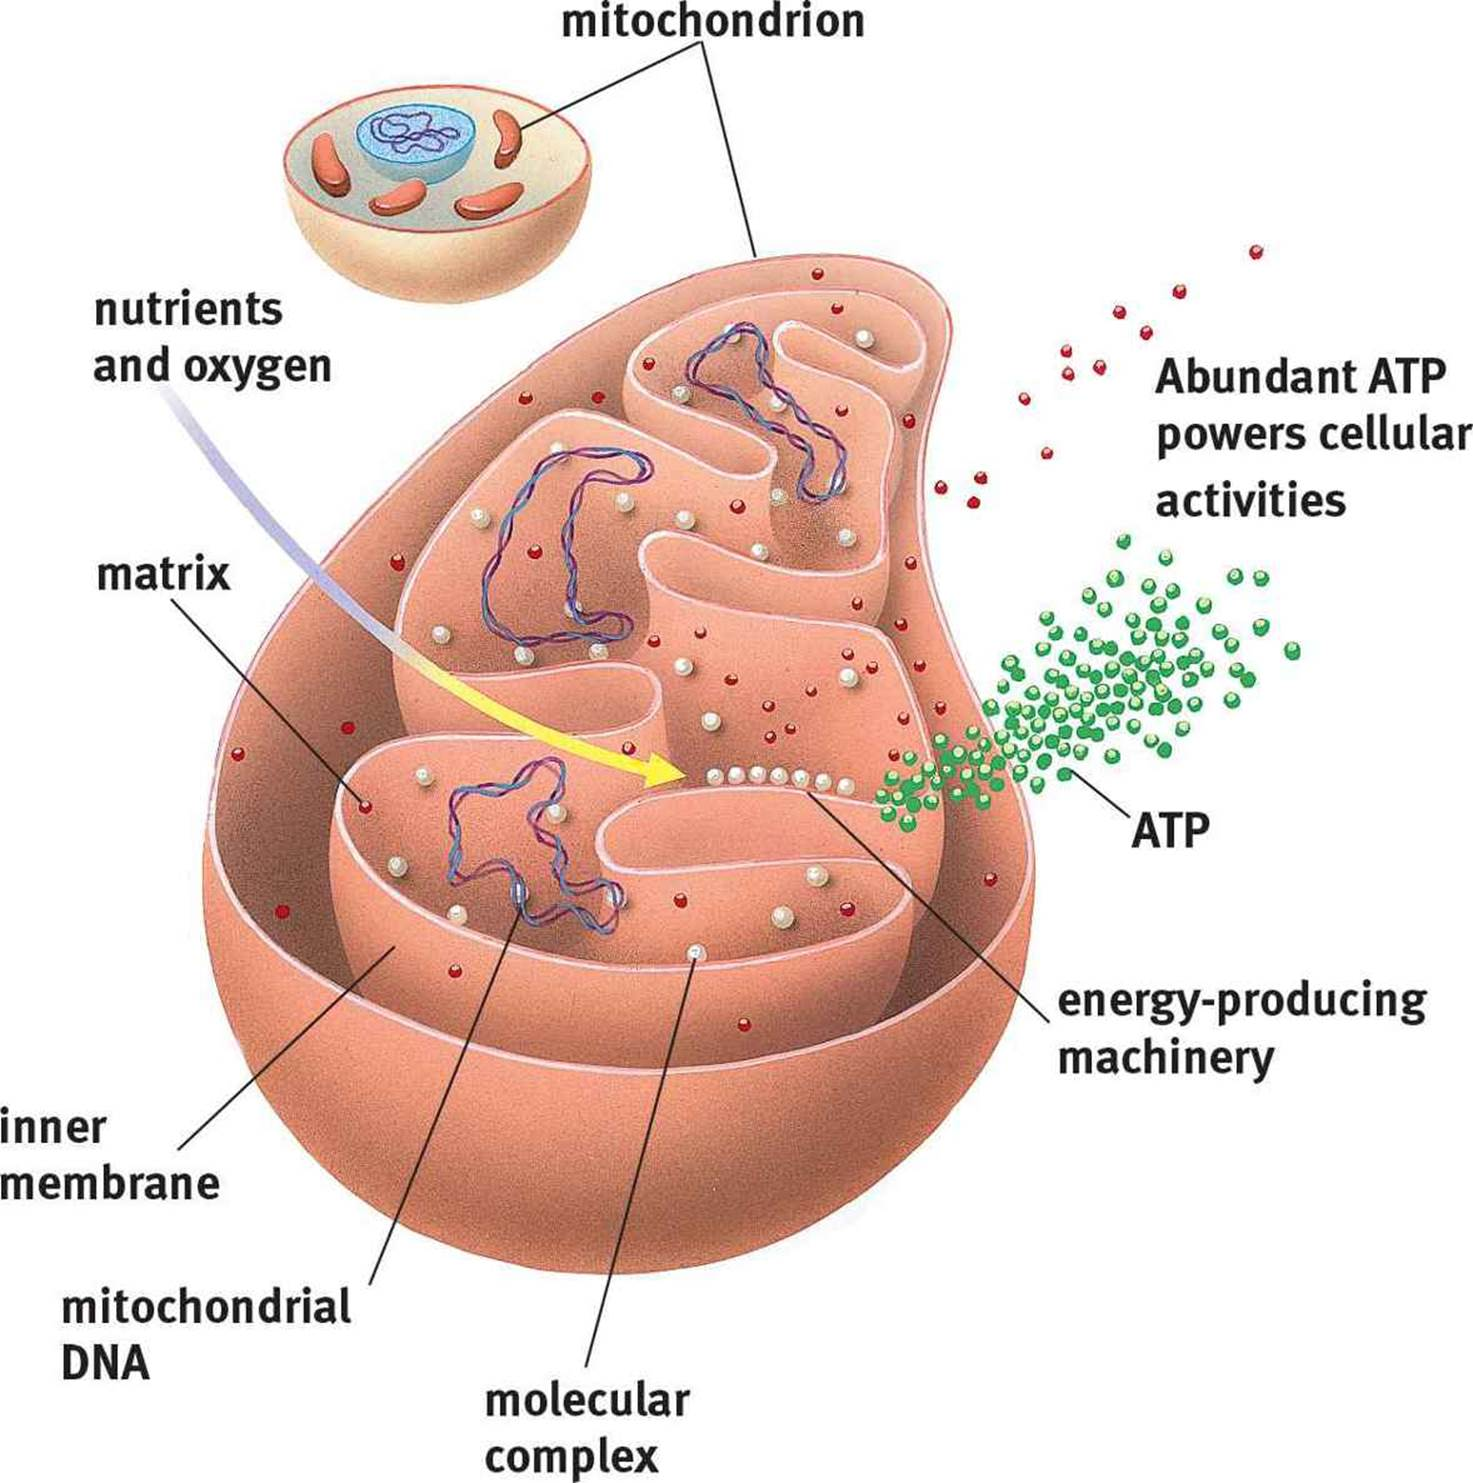 relationship between mitochondria and lysosomes location